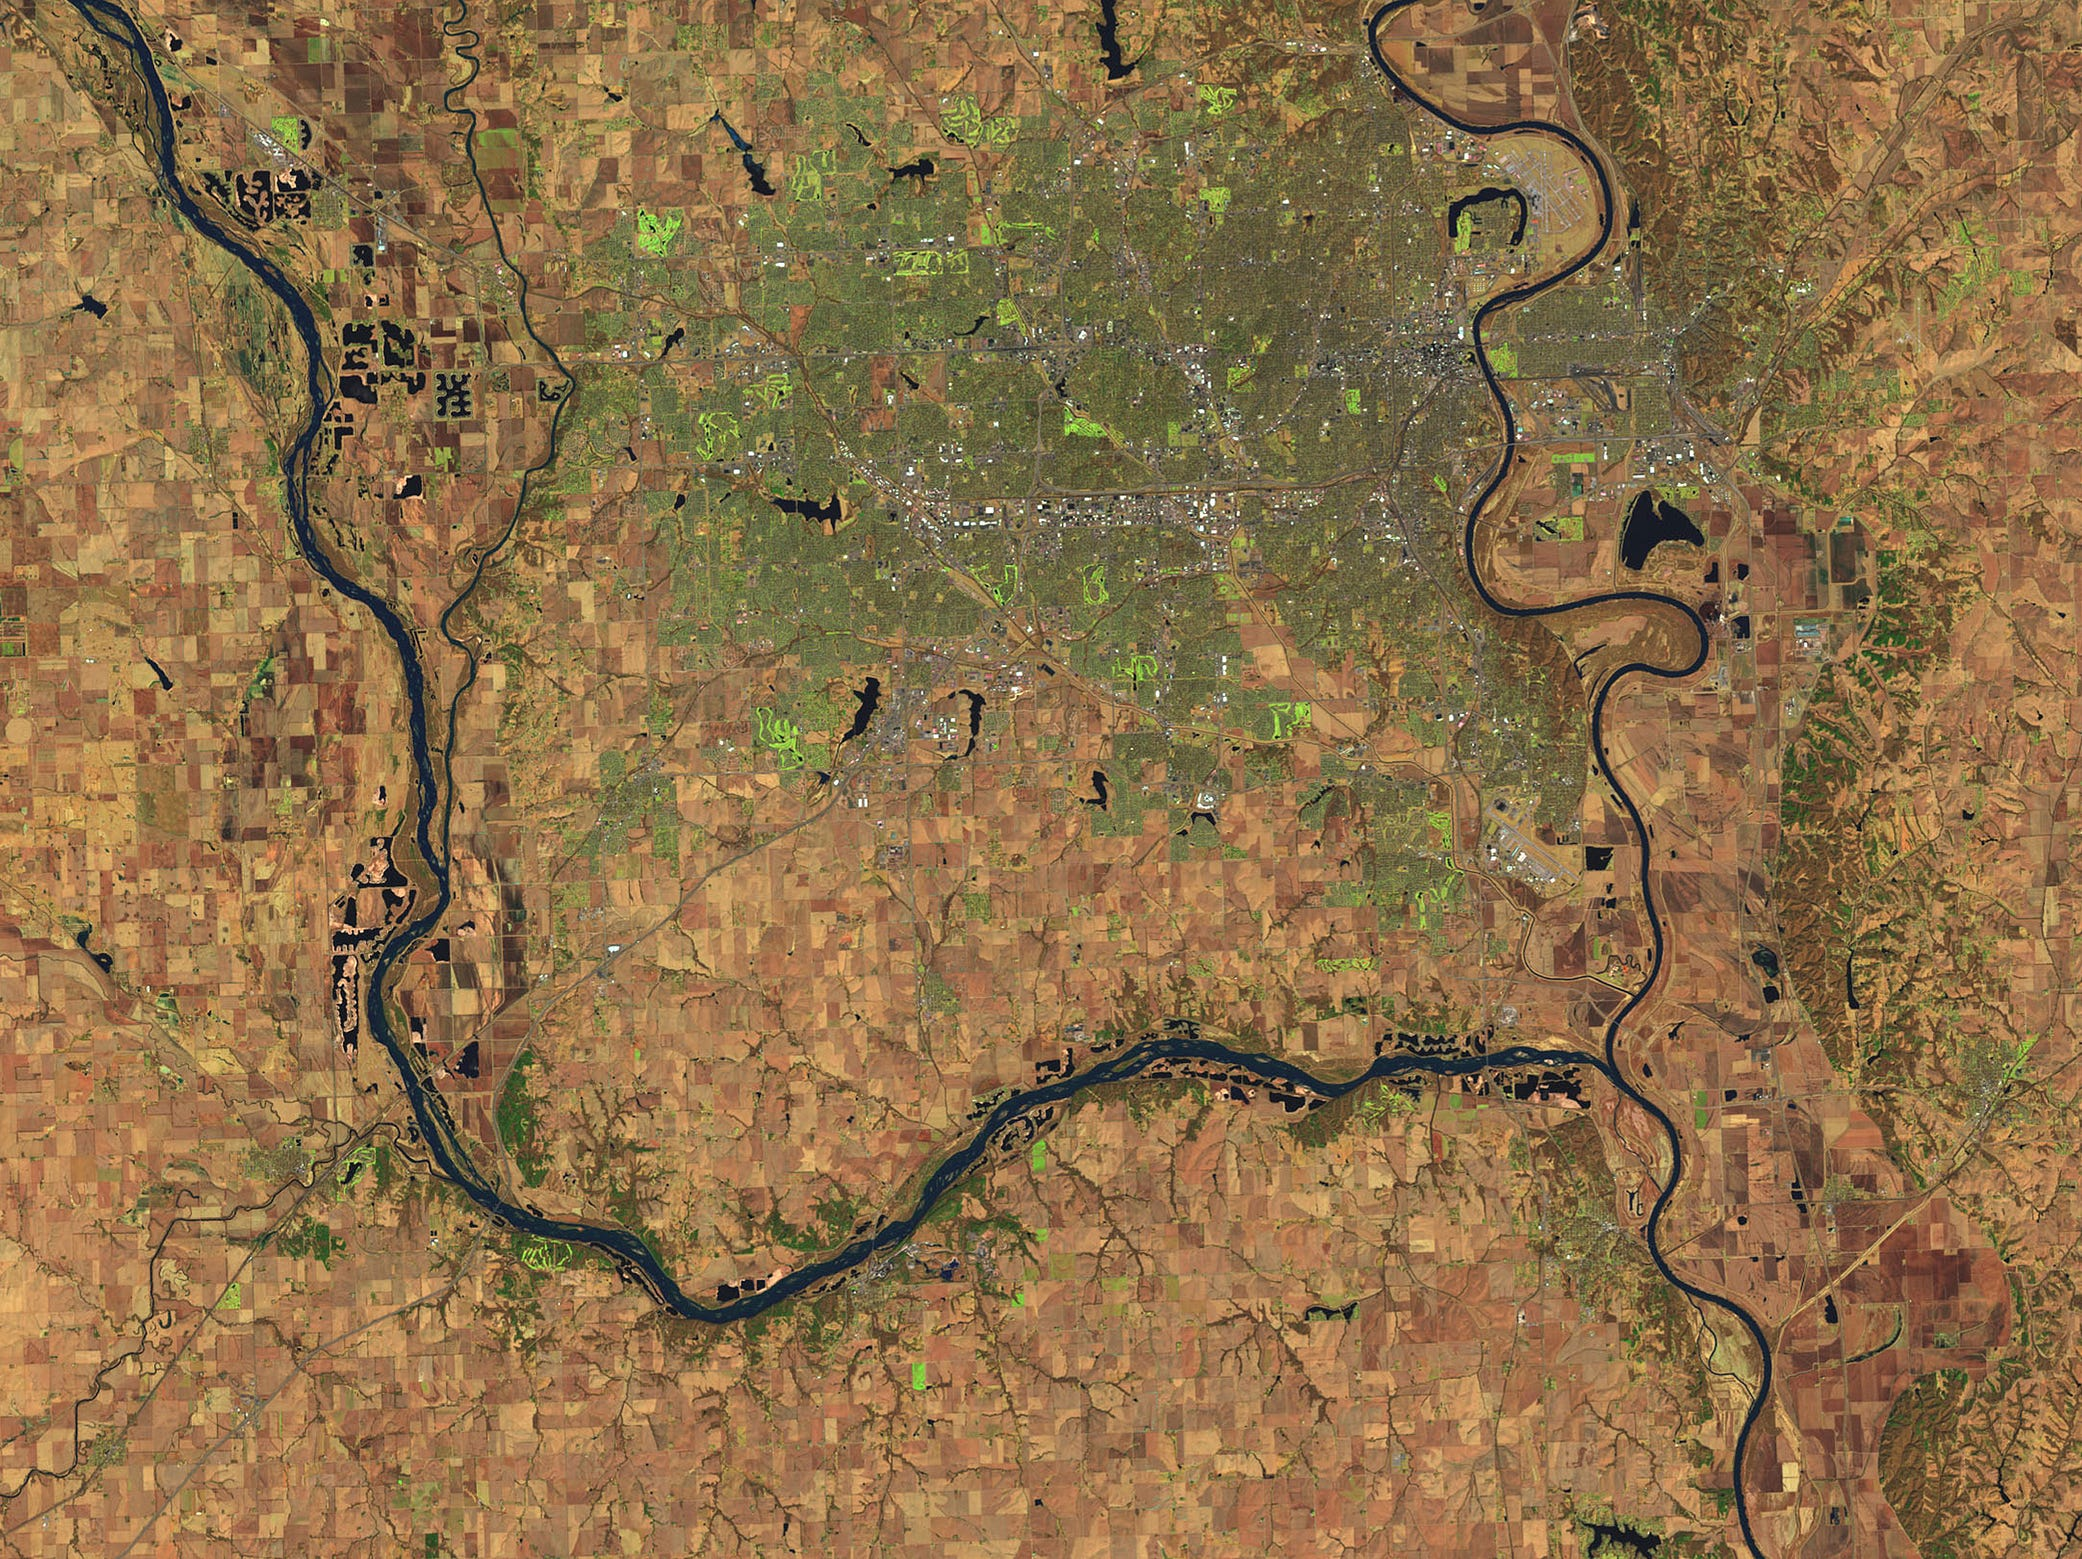 This March 20, 2018 NASA satellite image provided by NASA shows Omaha, Neb., top, surround by Platte River, left, and Mississippi River as two rivers meet just south of Offutt Air Force Base.  A disaster declaration has been declared for nearly 70 percent of the state of Nebraska. The state's Emergency Management Agency said in a news release Tuesday that 65 of the state's 93 counties are under state-issued emergency declarations.